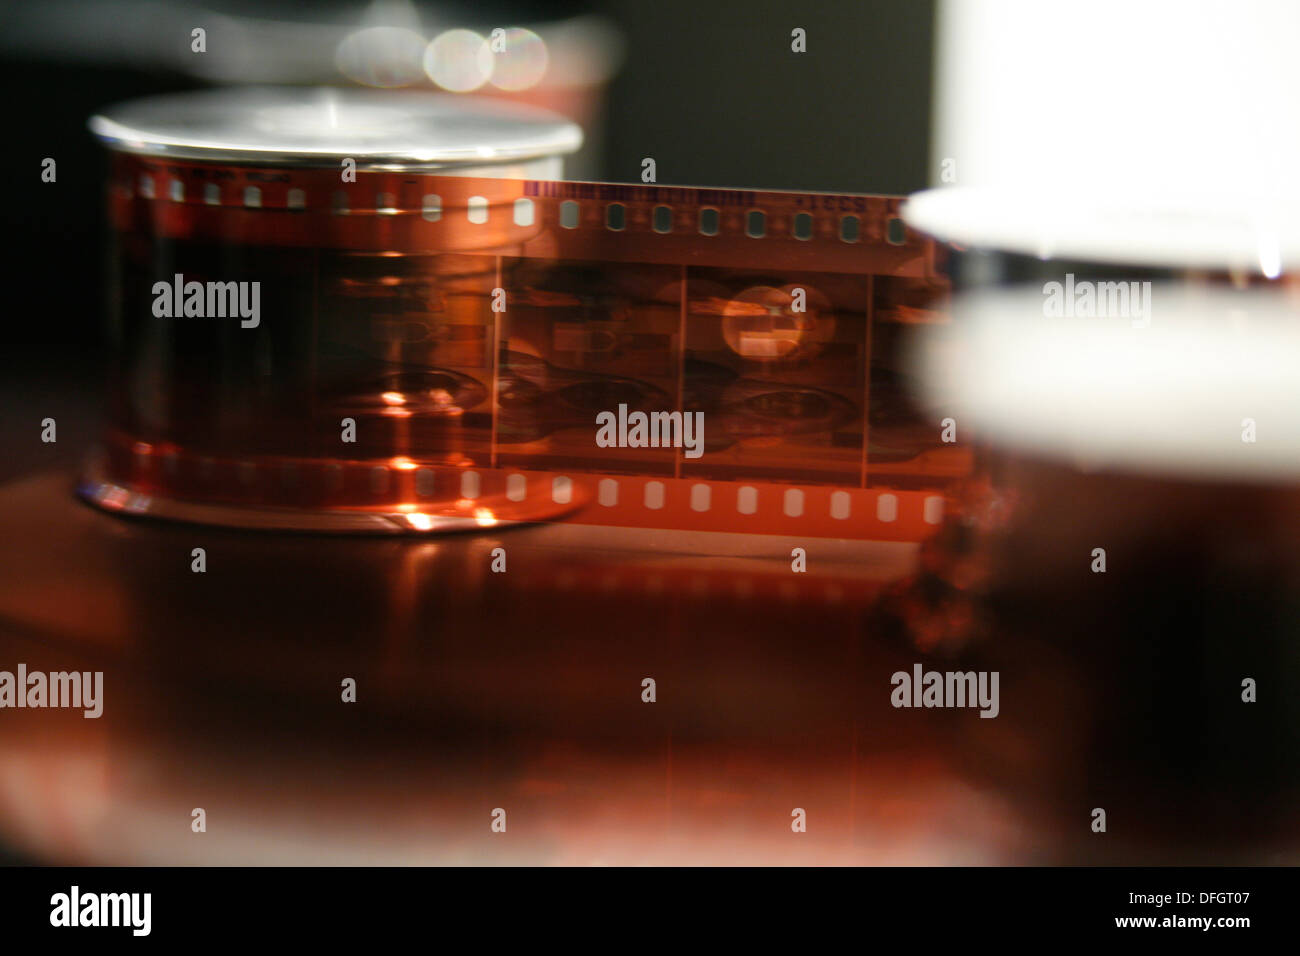 Cine film passing through a TeleCine machine and being transferred to video - Stock Image